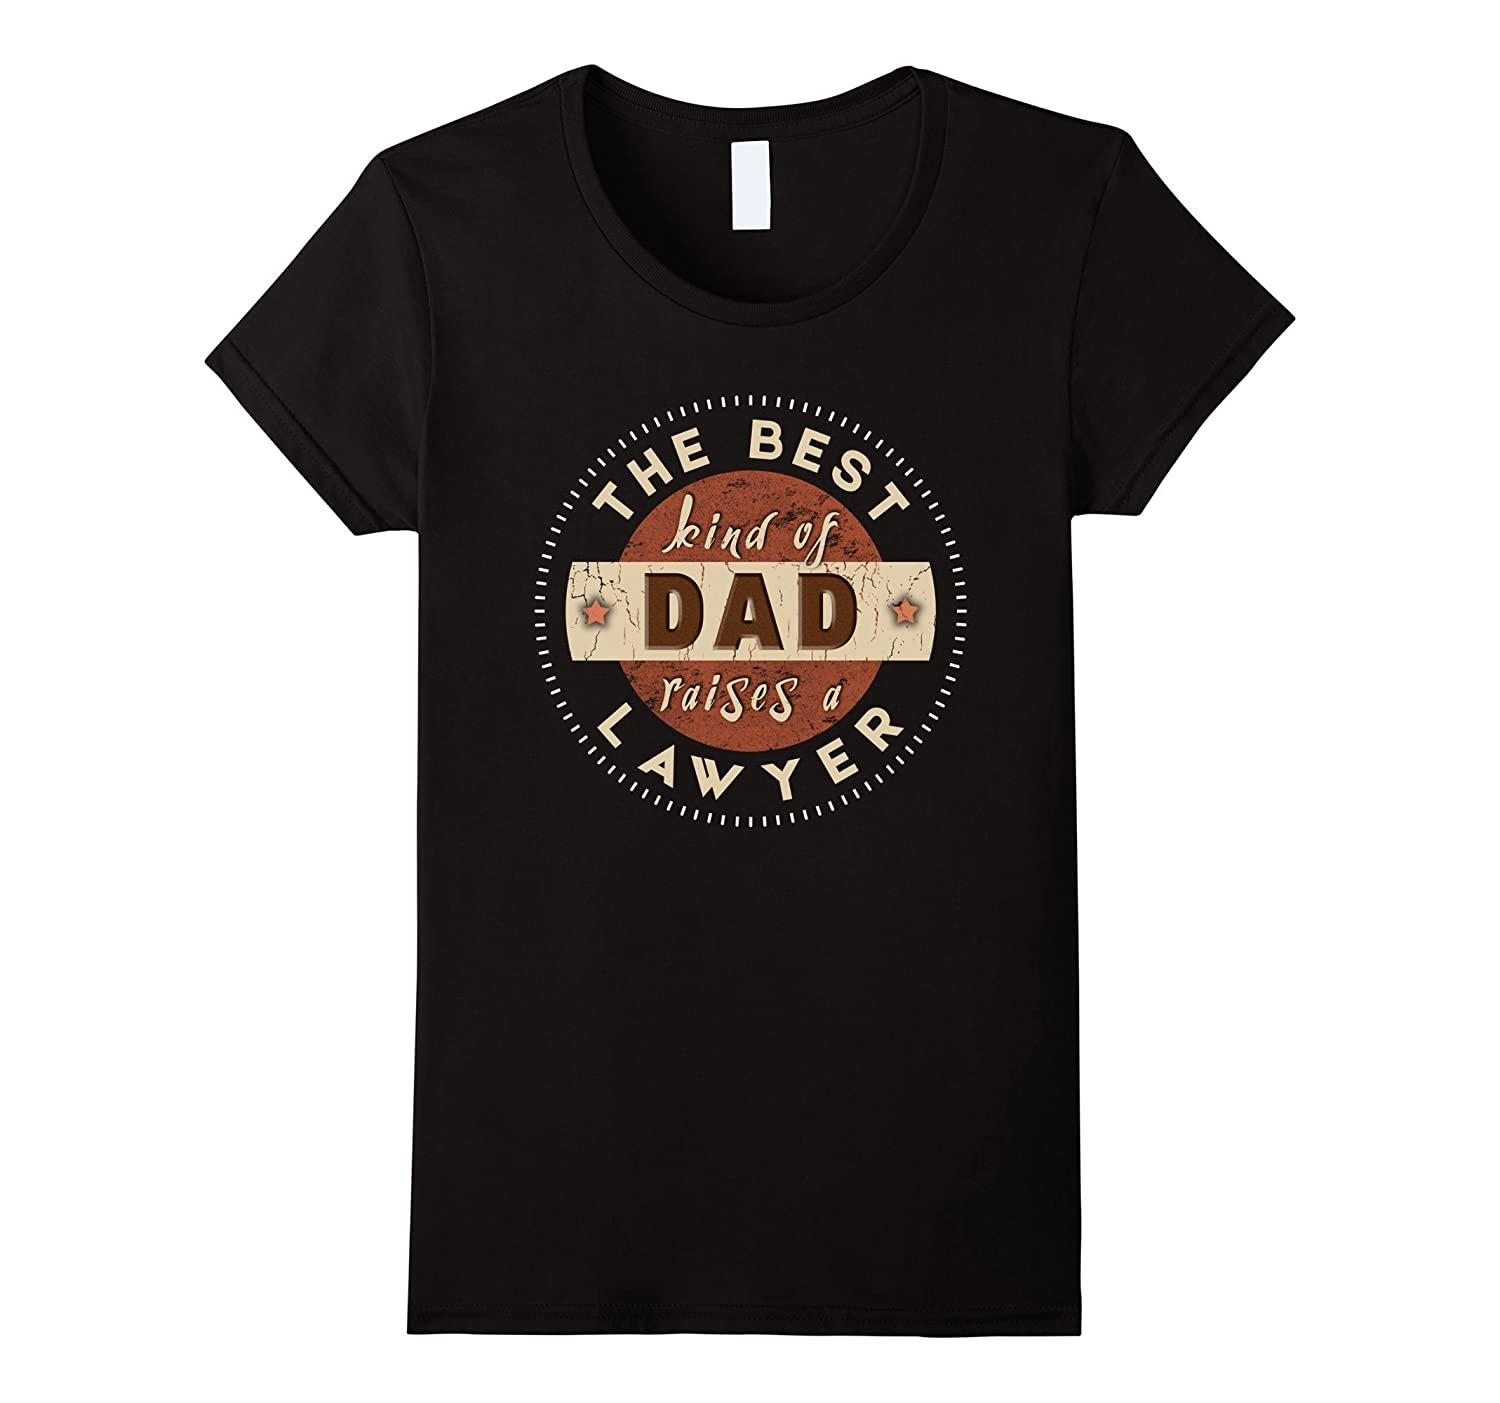 The Best Kind of Dad Raises a Lawyer – Fathers Day T-Shirt